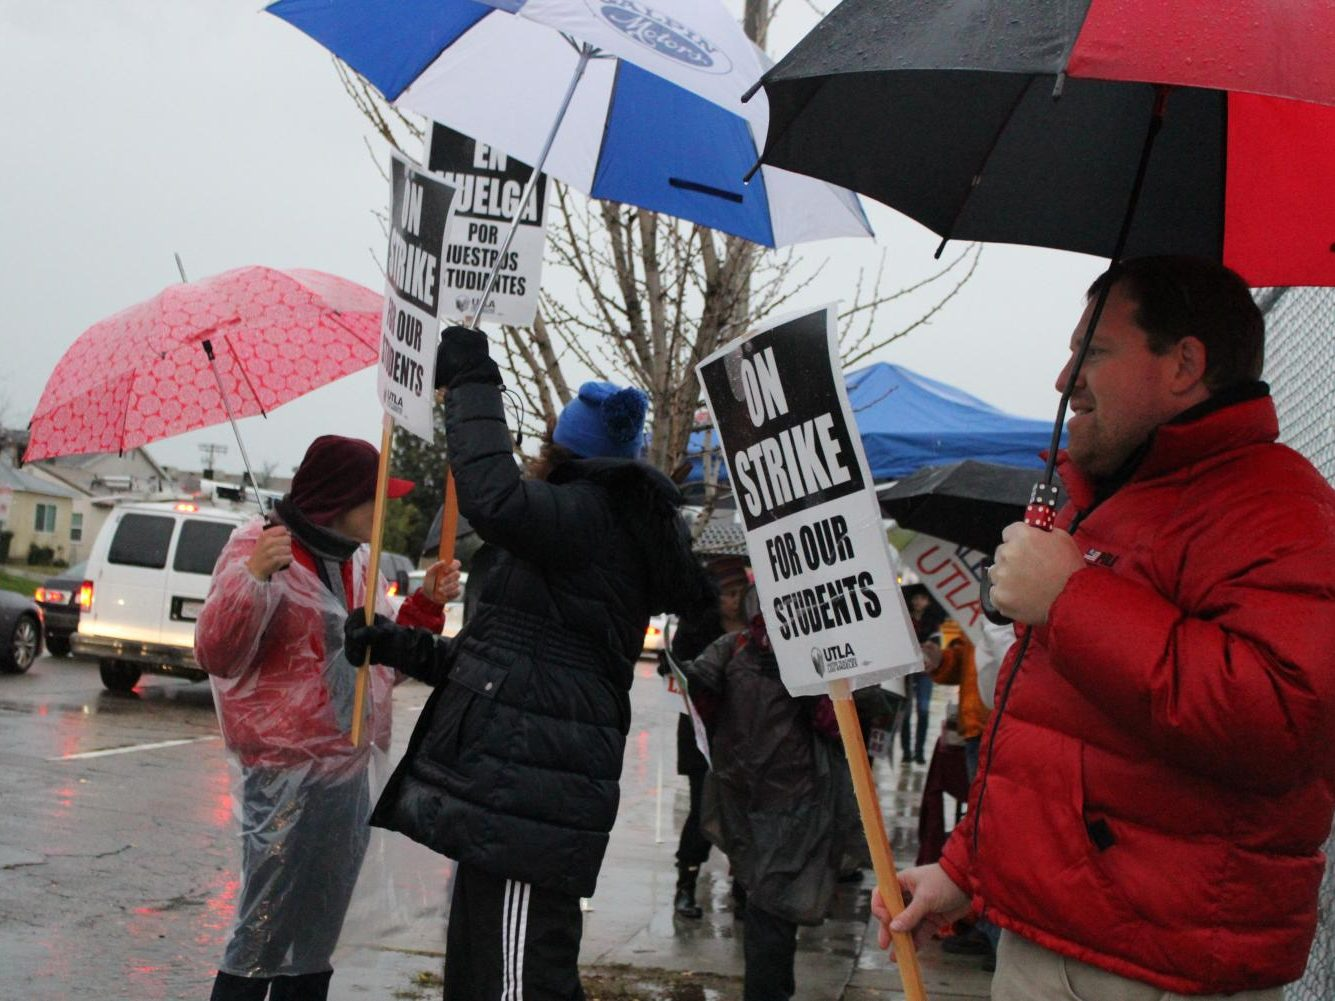 Teachers and counselors from Daniel Pearl Magnet High School waved up signs about being on strike, shouted out chants and received honks from cars as they continued to picket on Jan. 14